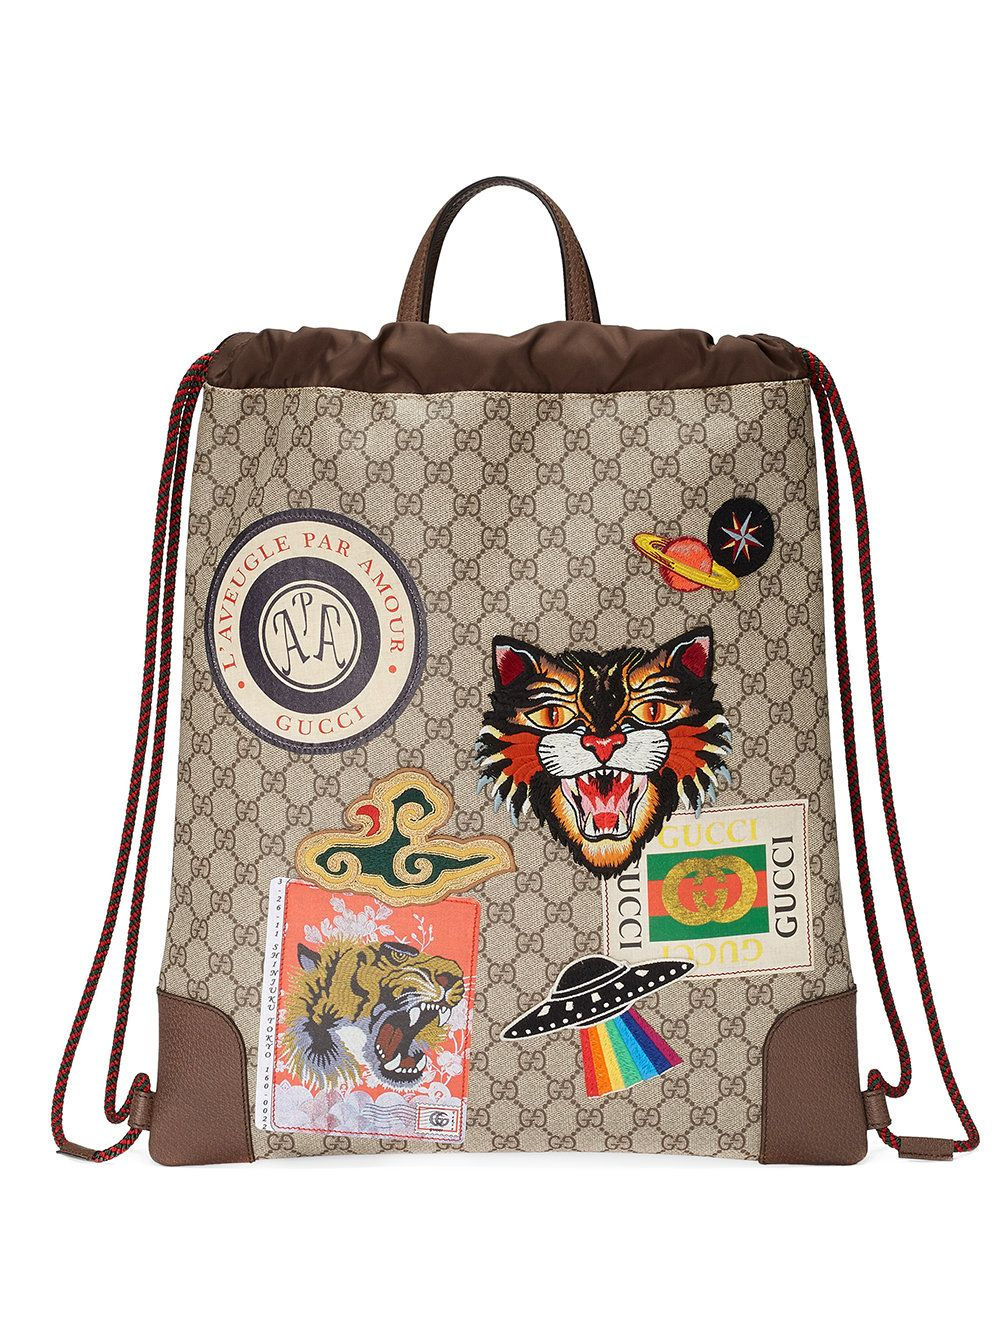 0357da7f1aa9 Gucci Courrier soft GG Supreme drawstring backpack   bags   luggage ...